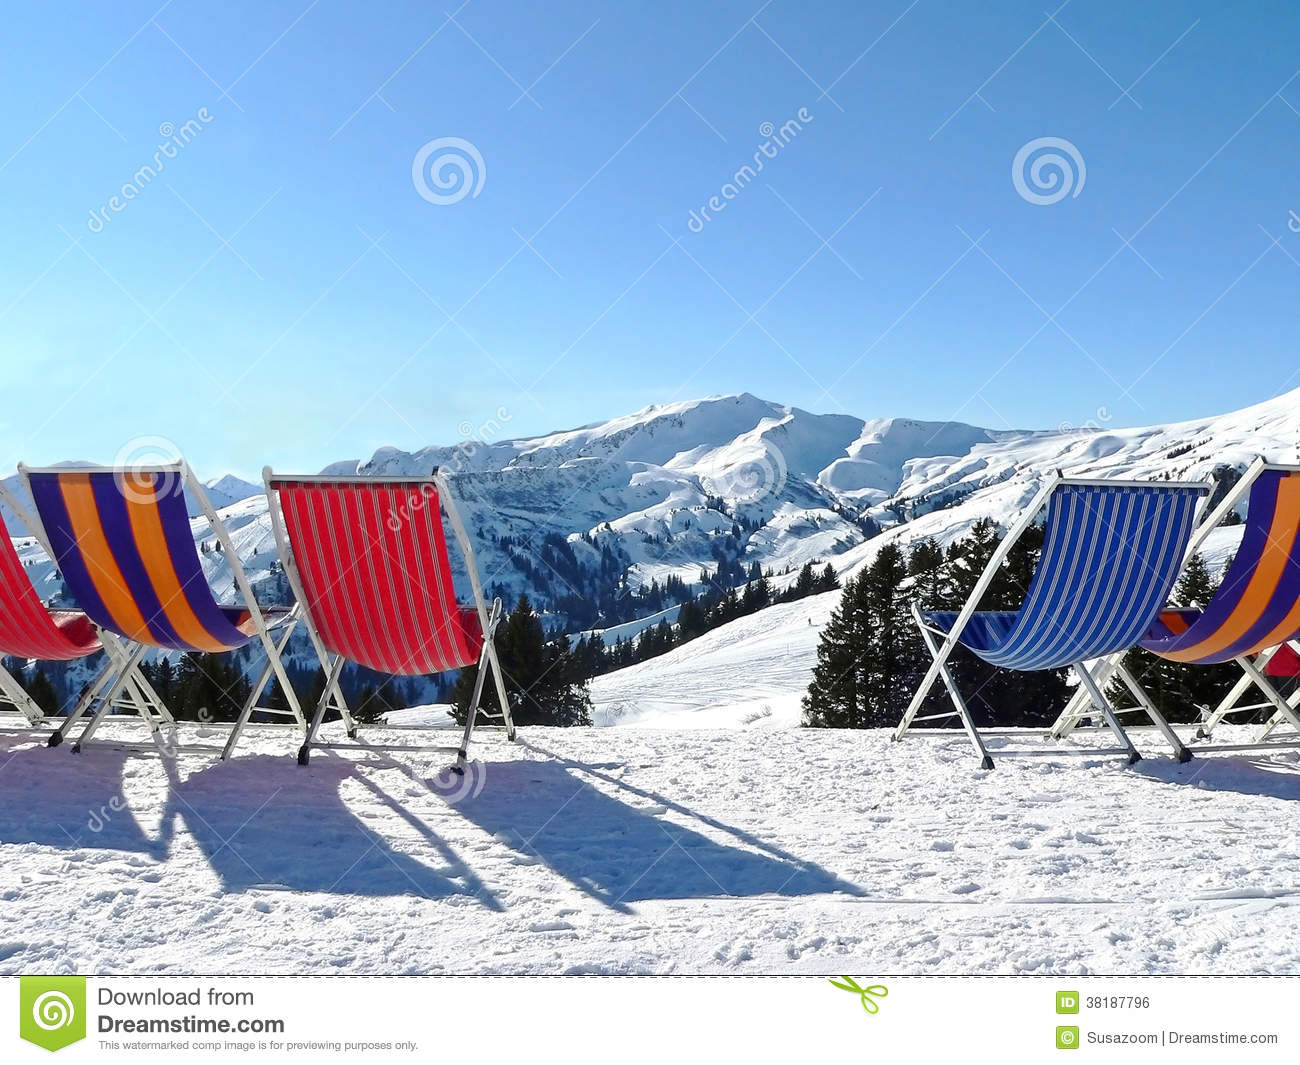 Download After Ski Relaxation Sunbeds In Winter Mountain Scenery Stock Photo - Image of sunbeds, relax: 38187796